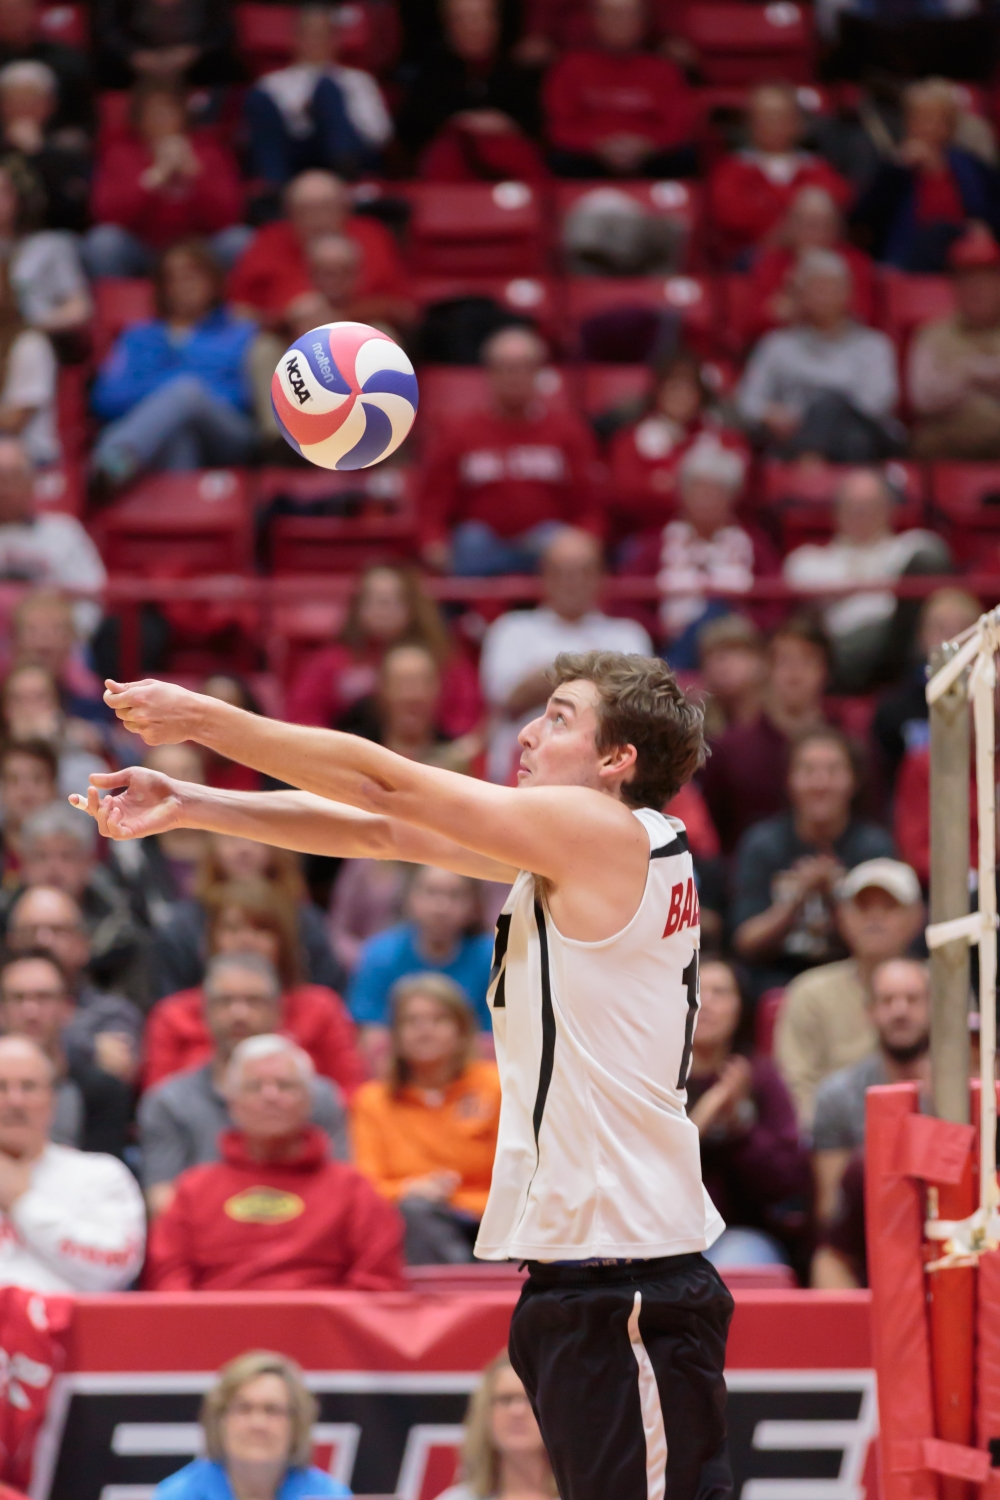 PREVIEW: No. 11 Ball State men's volleyball vs. Grand Canyon